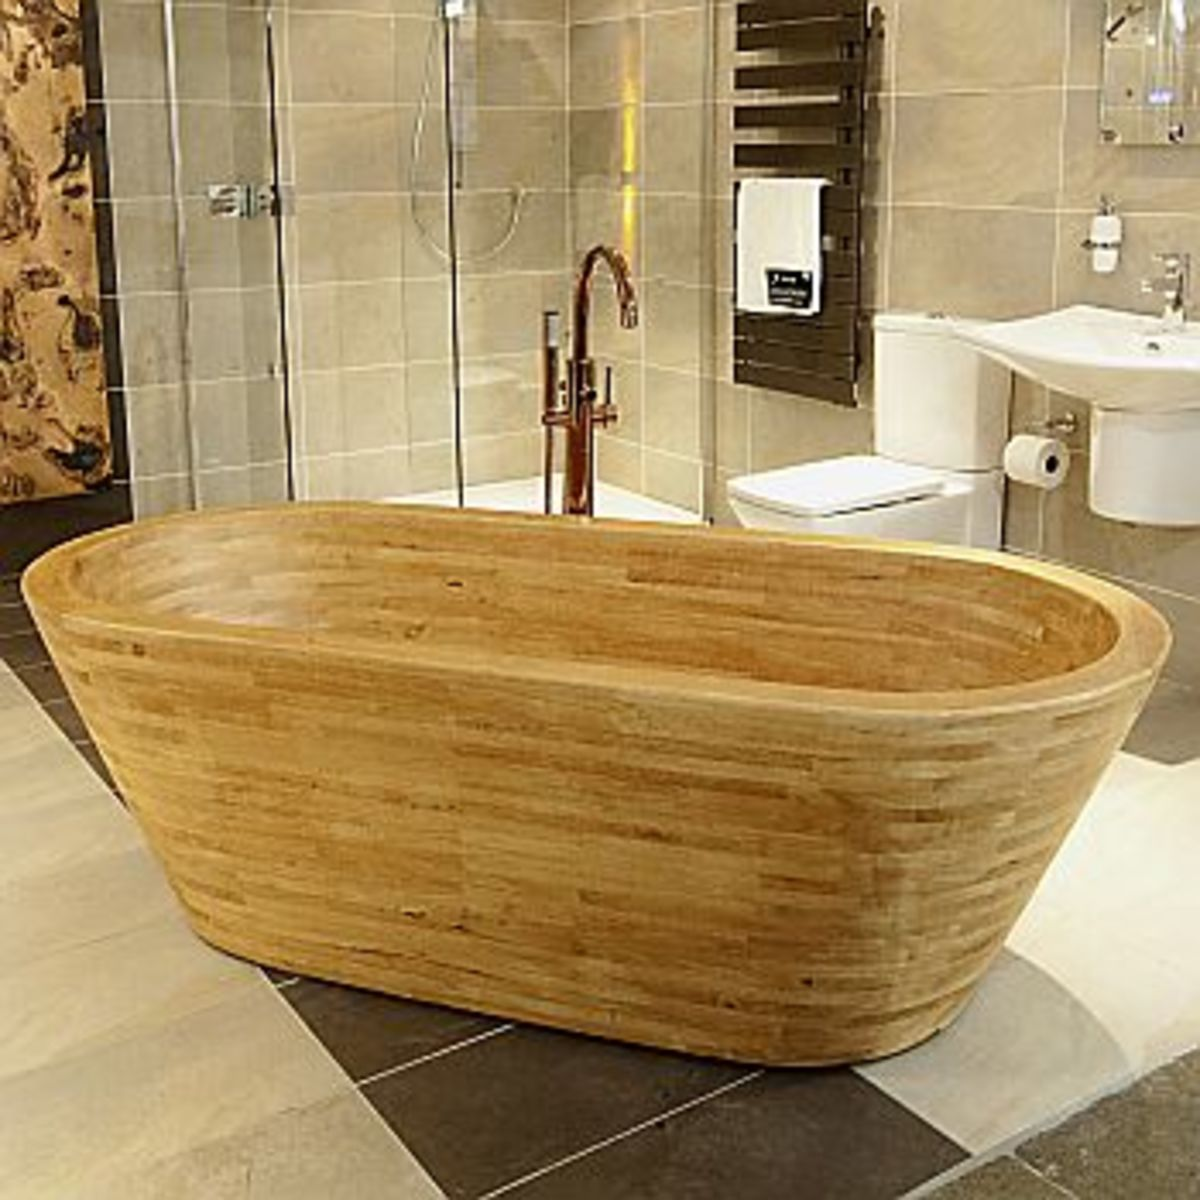 Decorating Your Bathroom Around a Wood Bath